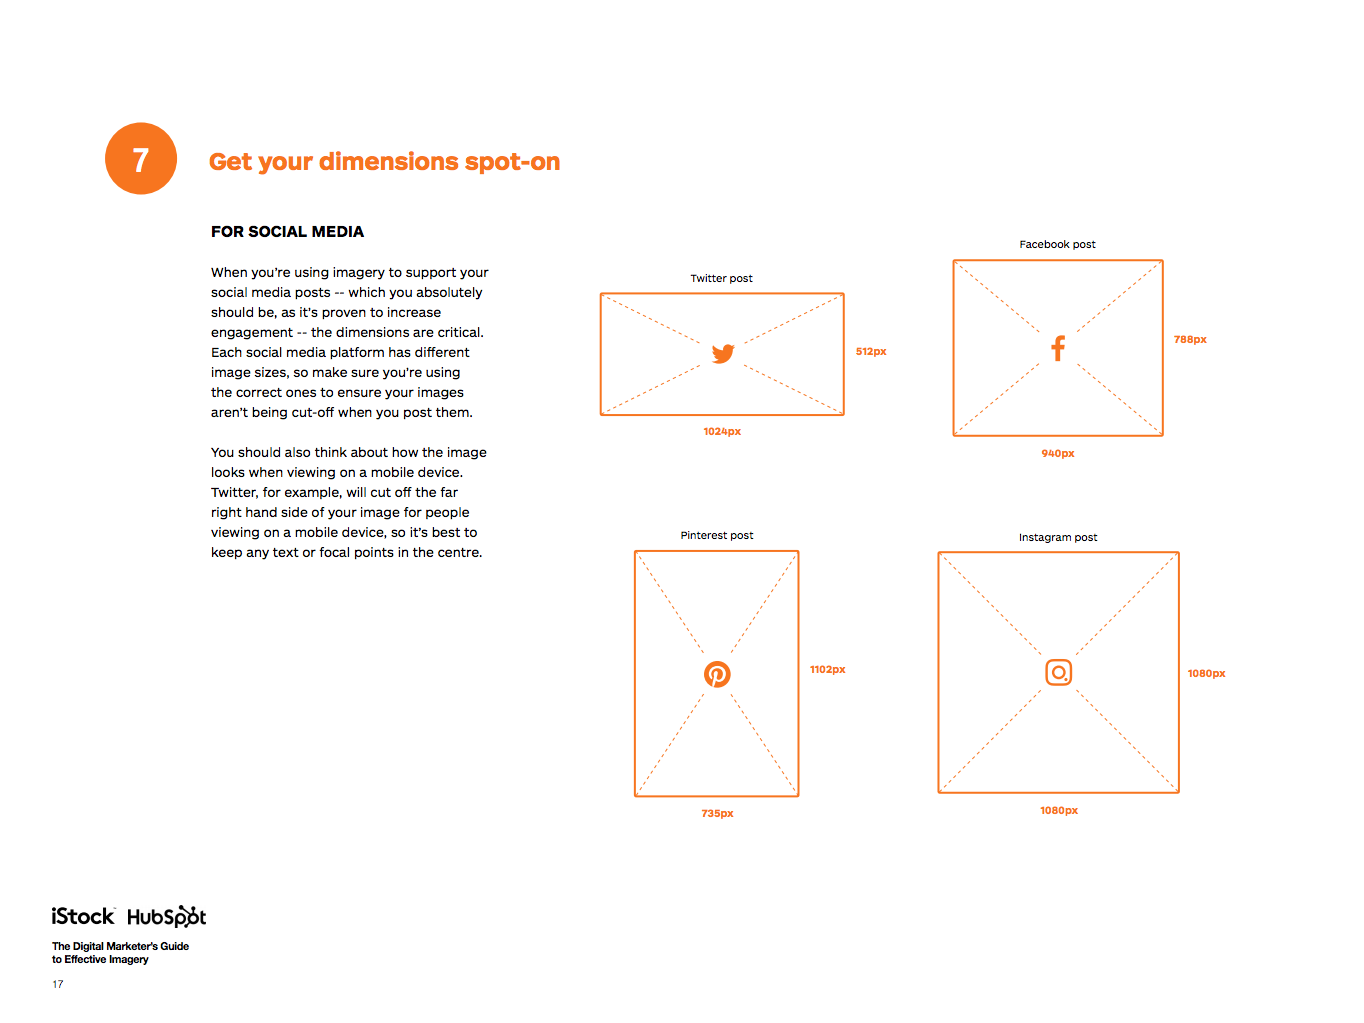 HubSpot_iStock_Ebook_Preview_5